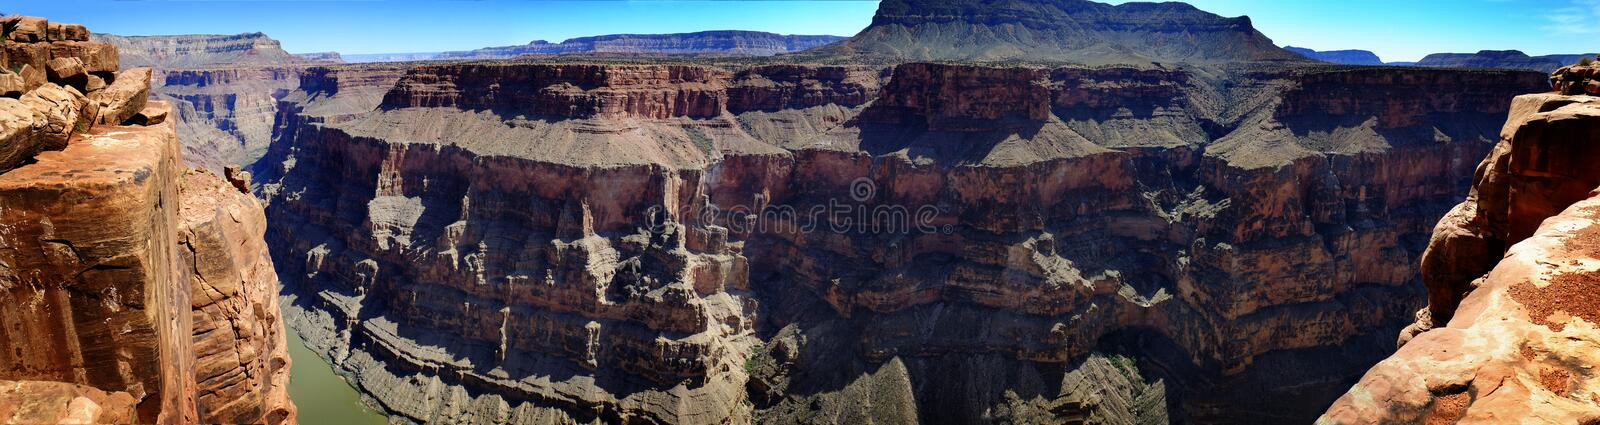 People at the North Rim of Grand Canyon Gorge royalty free stock photography